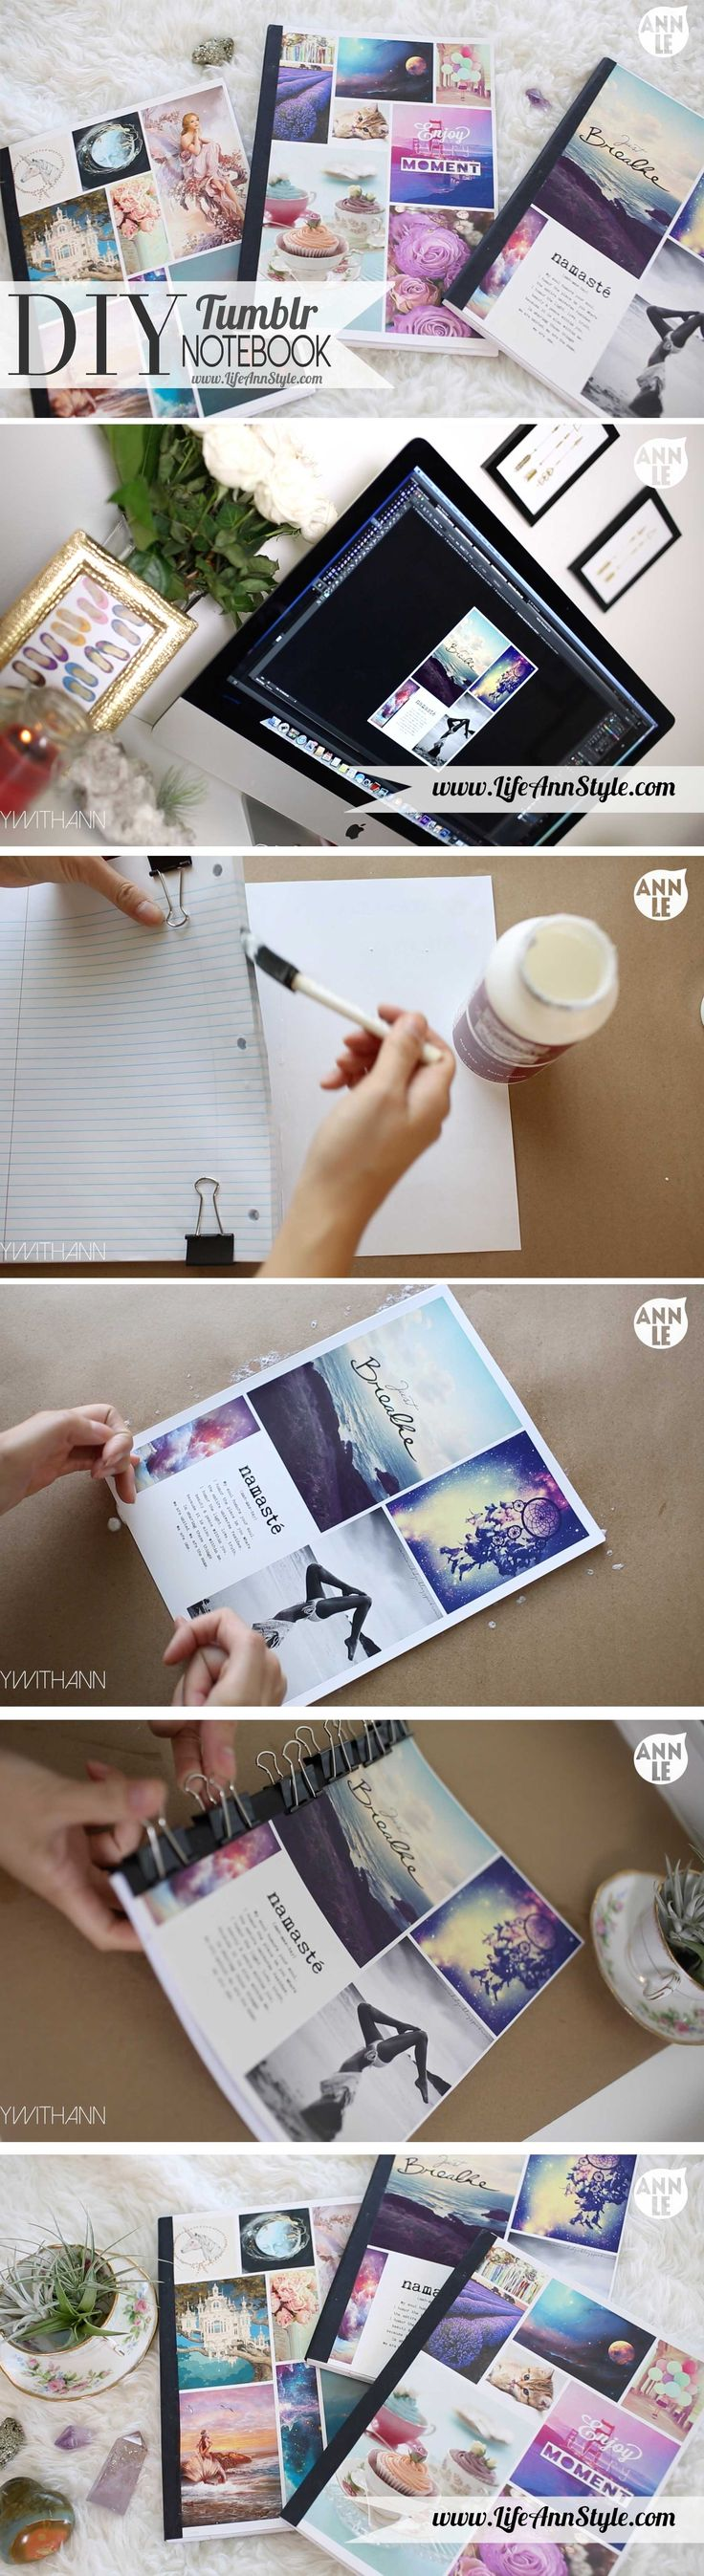 DIY Tumblr Inspired Notebook tumblr diy craft crafts craft ideas easy crafts diy ideas diy crafts easy diy home crafts teen crafts crafts for teens